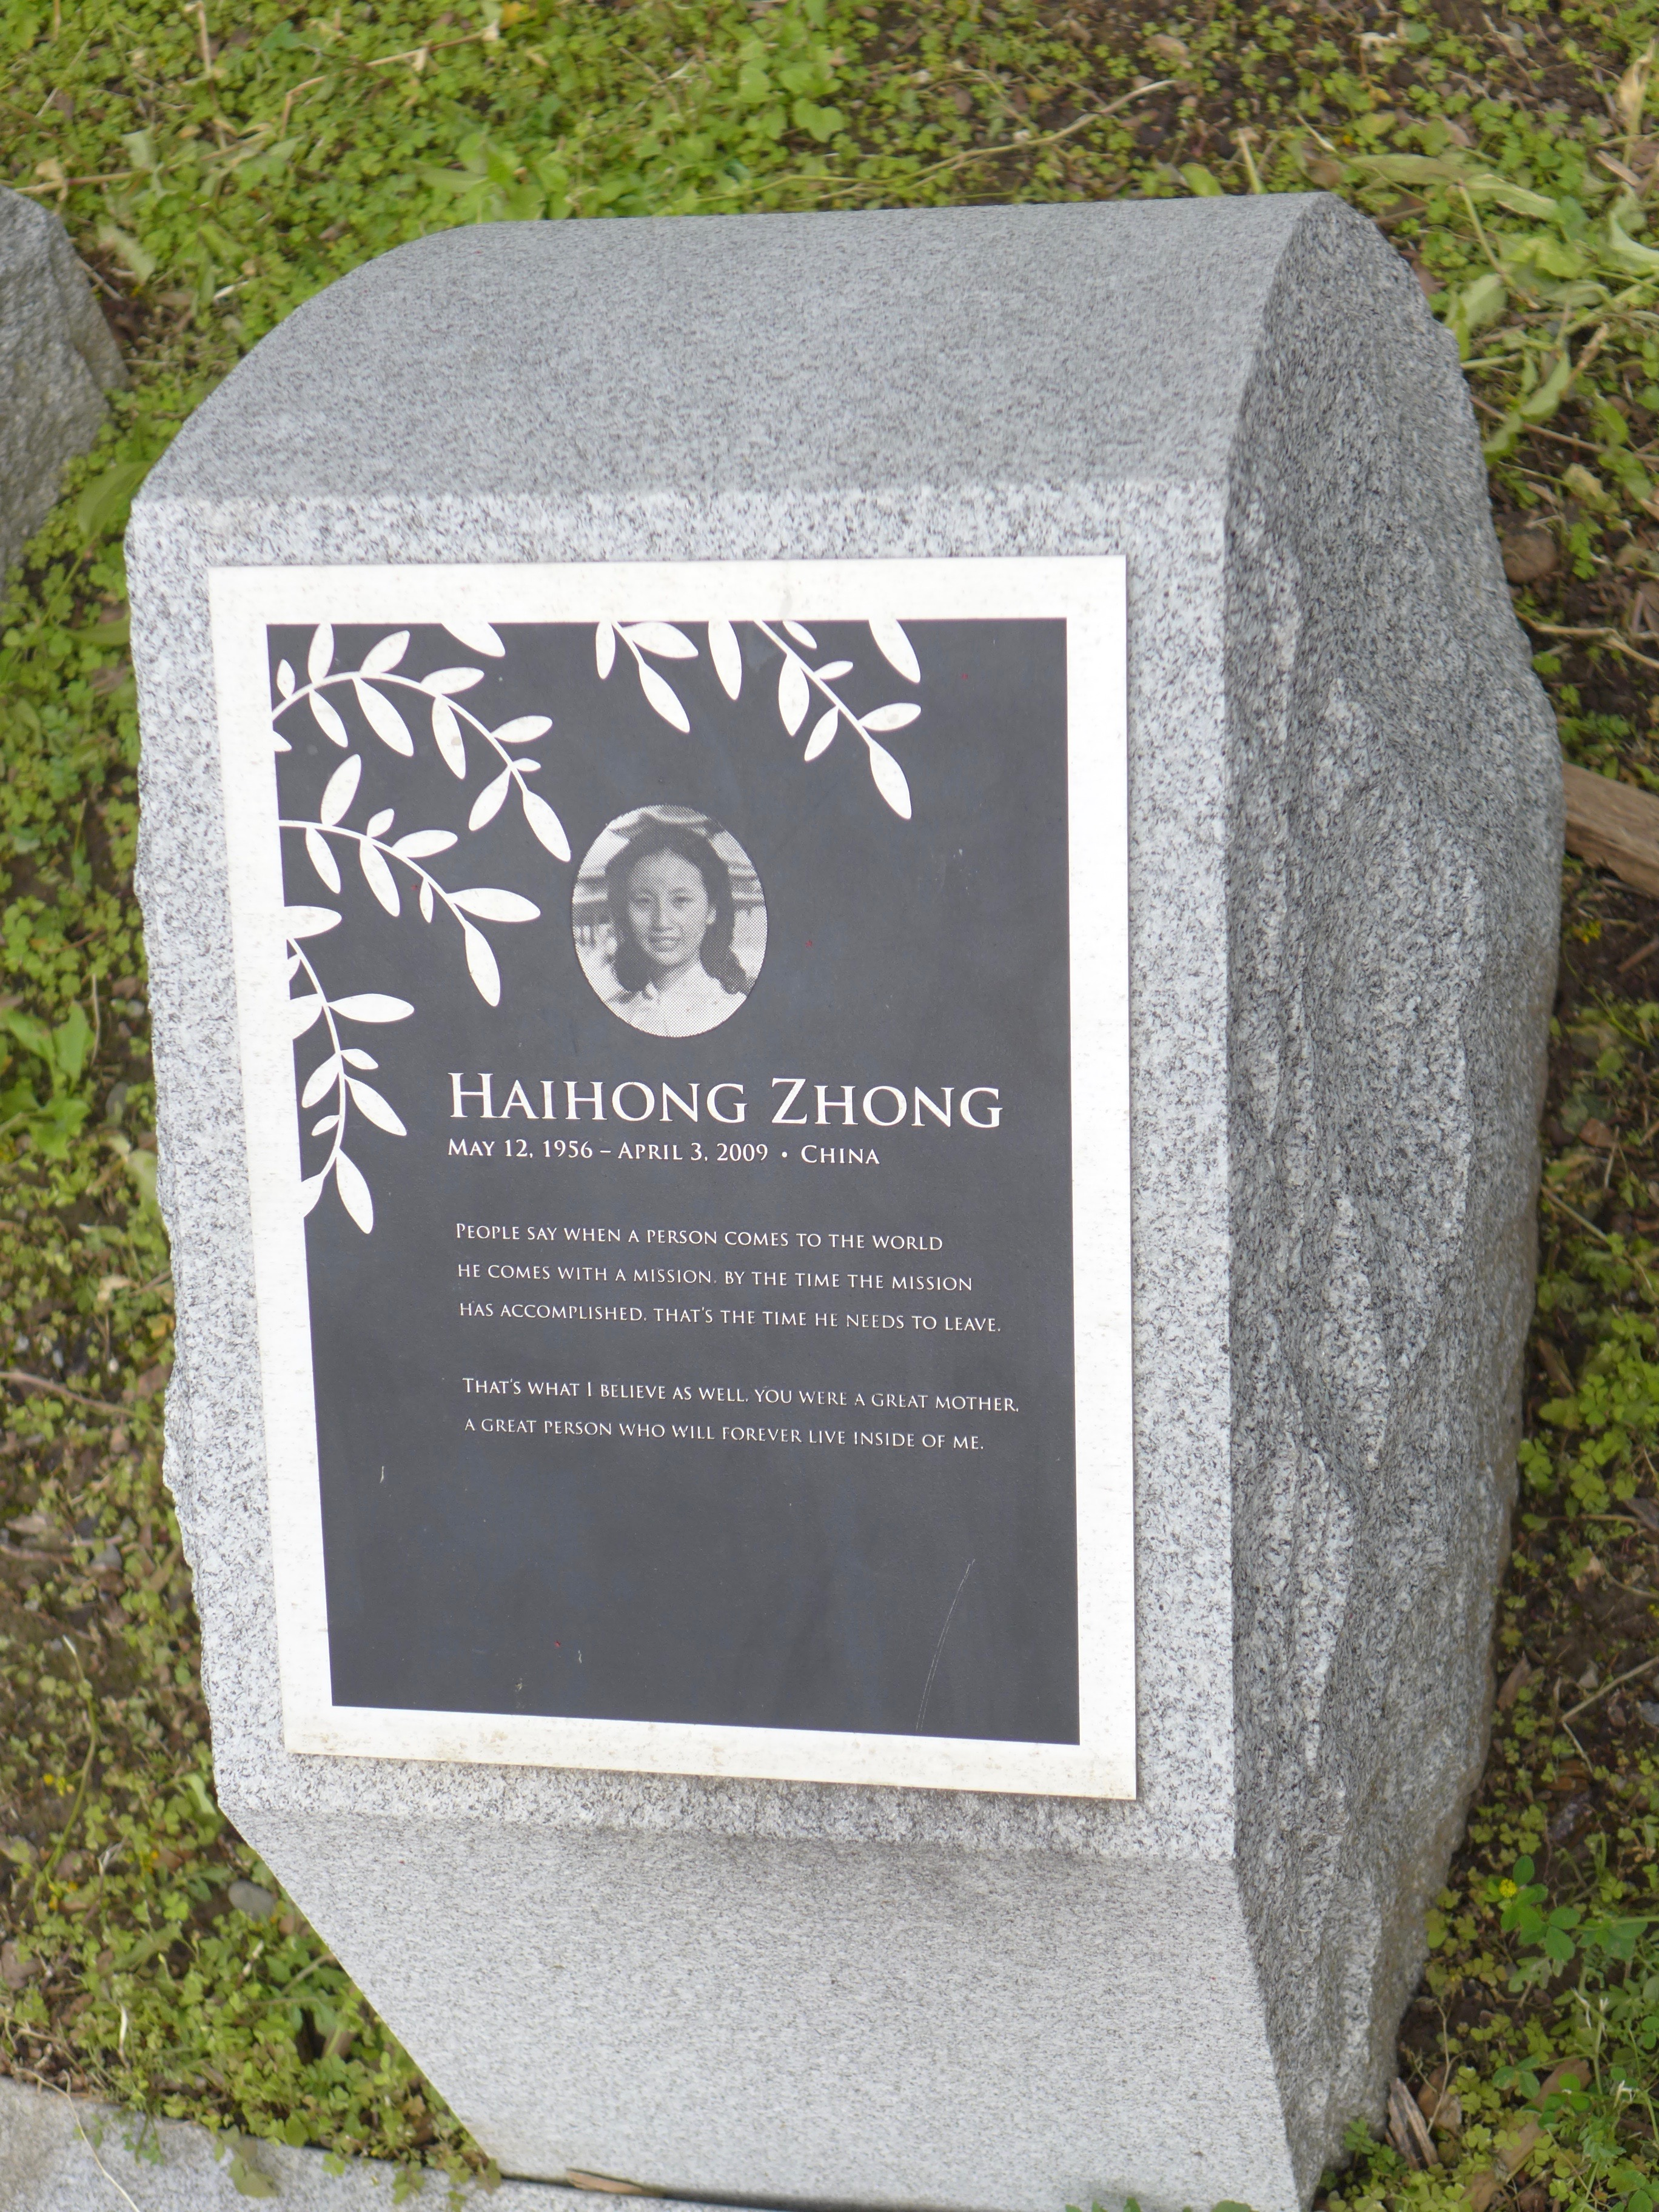 Memorial stone: Haihong Zhong / China